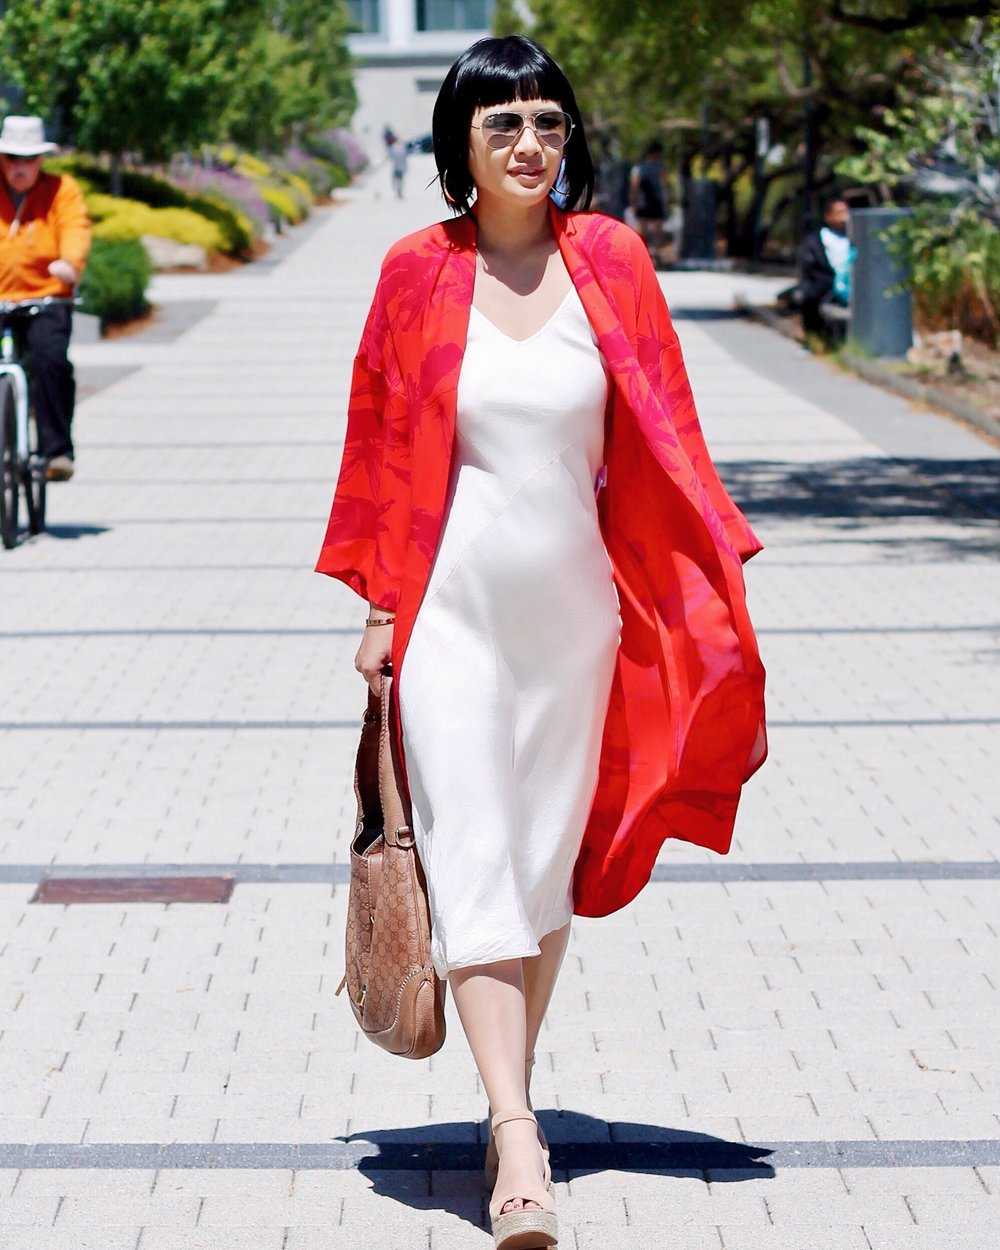 Aritzia dress and robe, Kenneth Cole shoes, Gucci bag, Ray-Ban sunglasses, Svelte Metals hoops